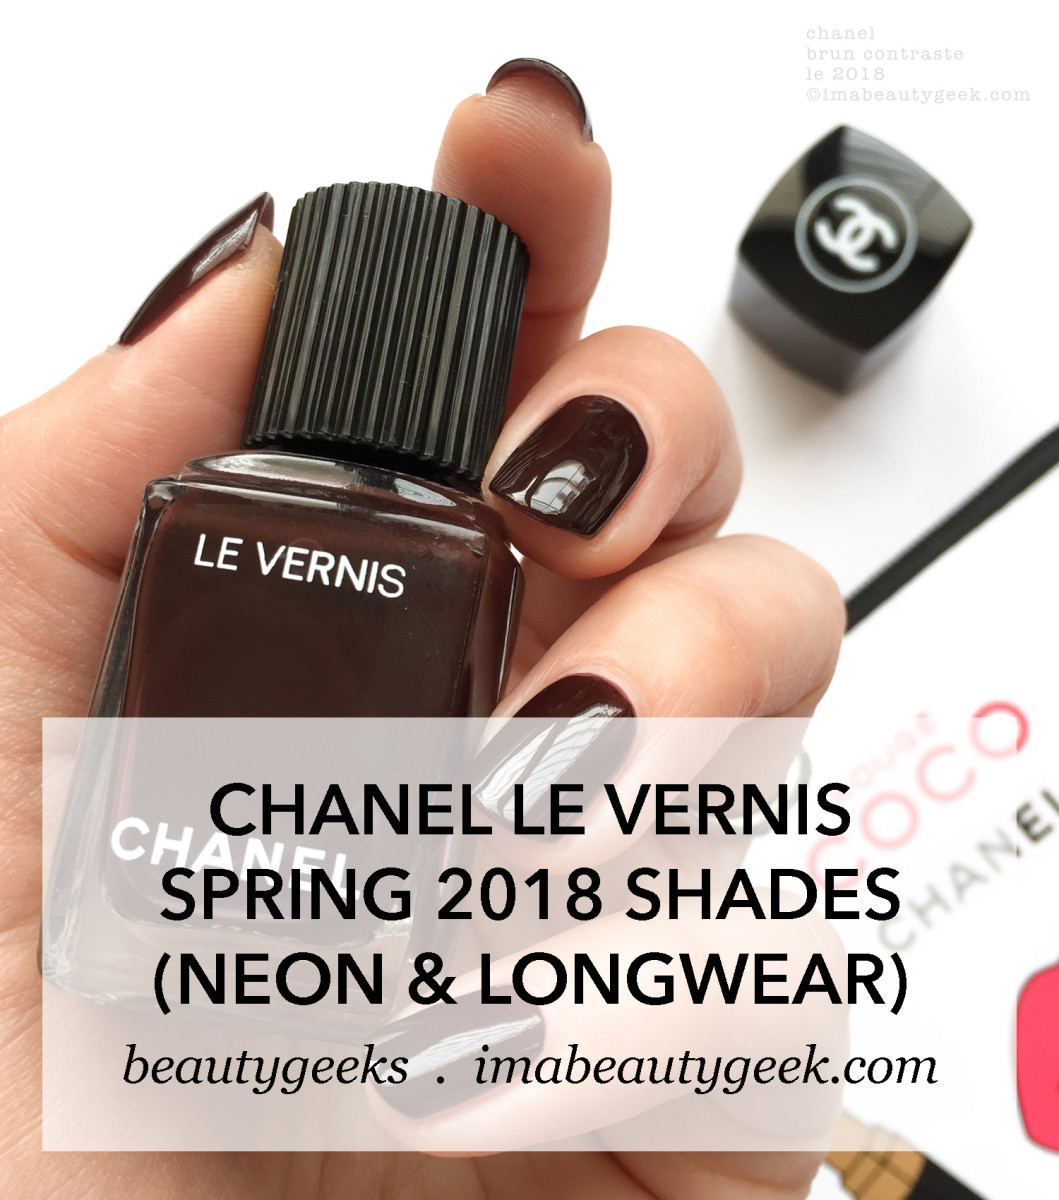 Chanel Le Vernis Spring 2018 New Shades Longwear and Neon-MANIGEEK-BEAUTYGEEKS